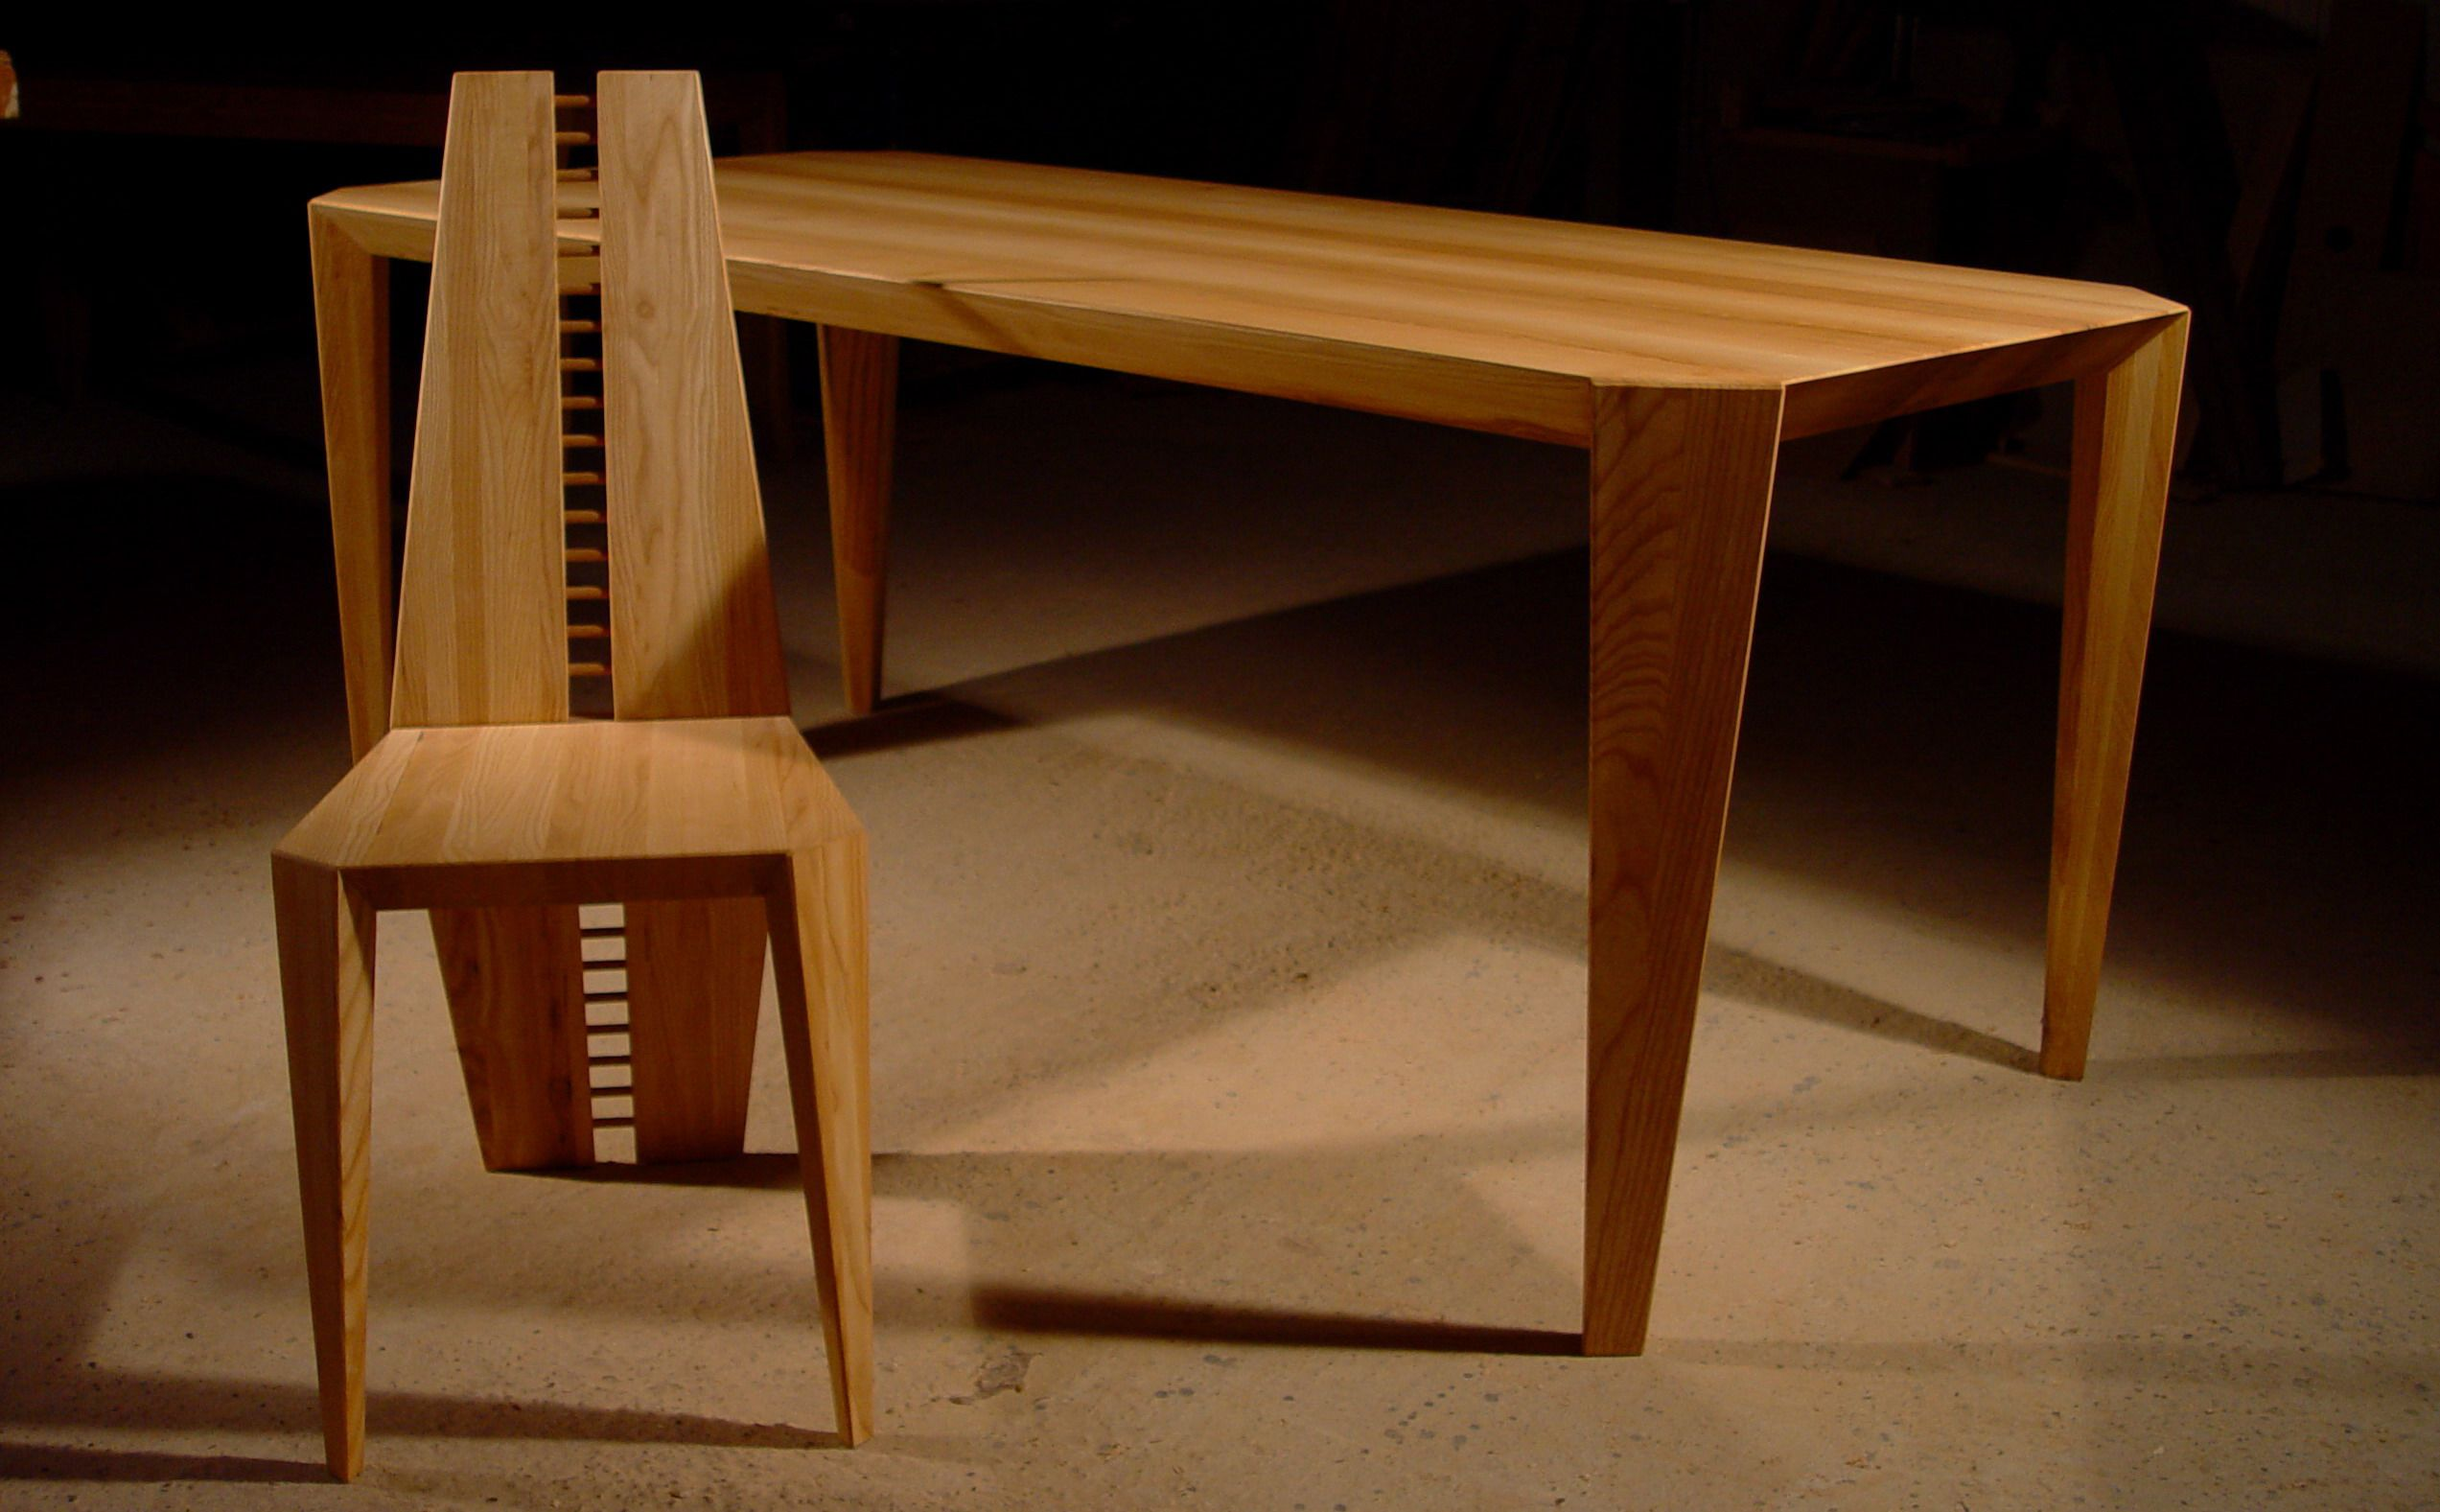 Origami table and chair